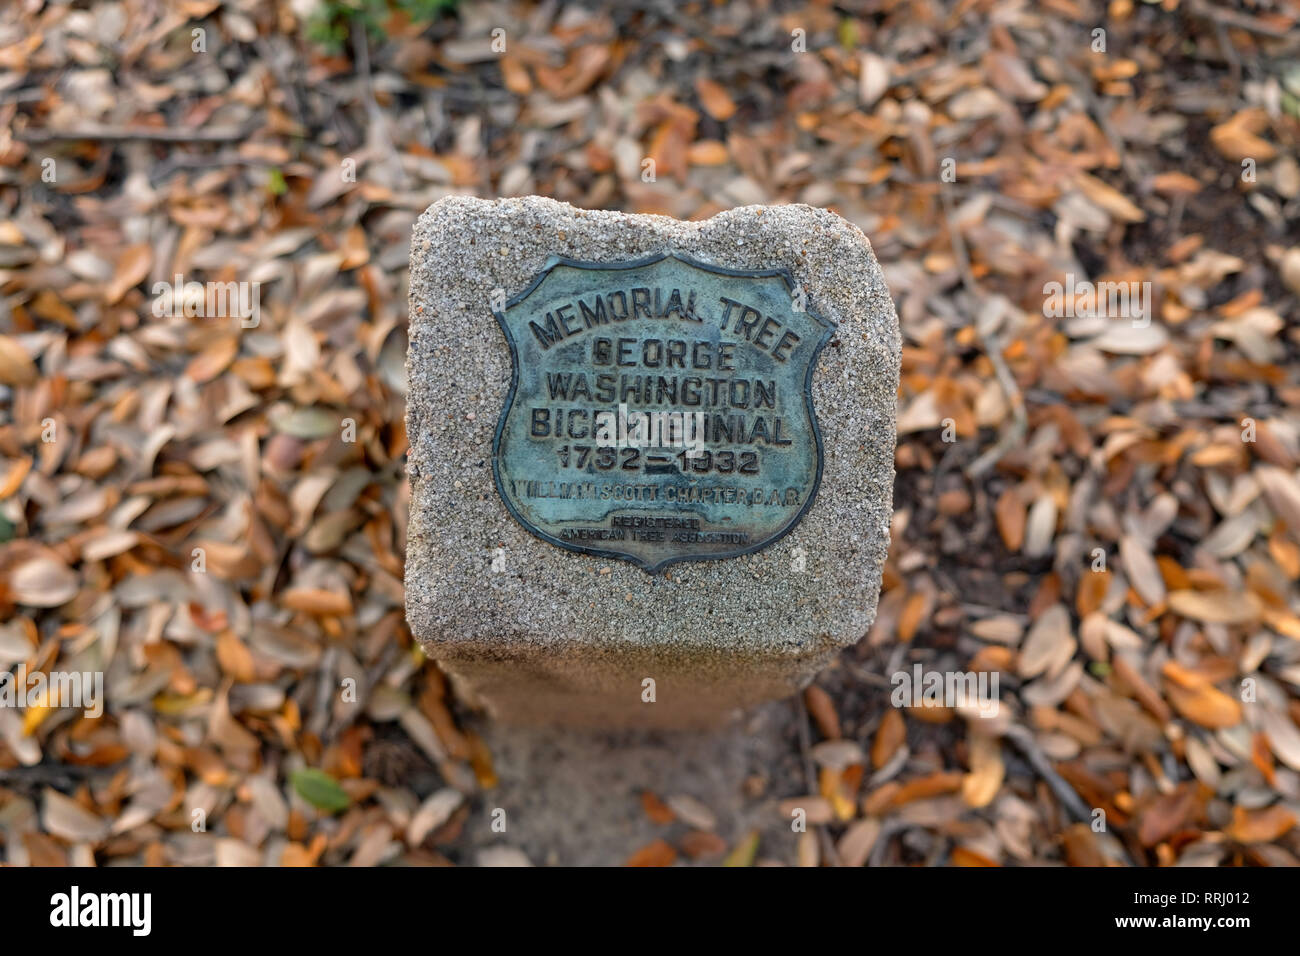 George Washington Bicentennial Tree Marker; dedicated in 1932 to commemorate the 200th anniversary of George Waghington's birth; Bryan, Texas, USA. - Stock Image